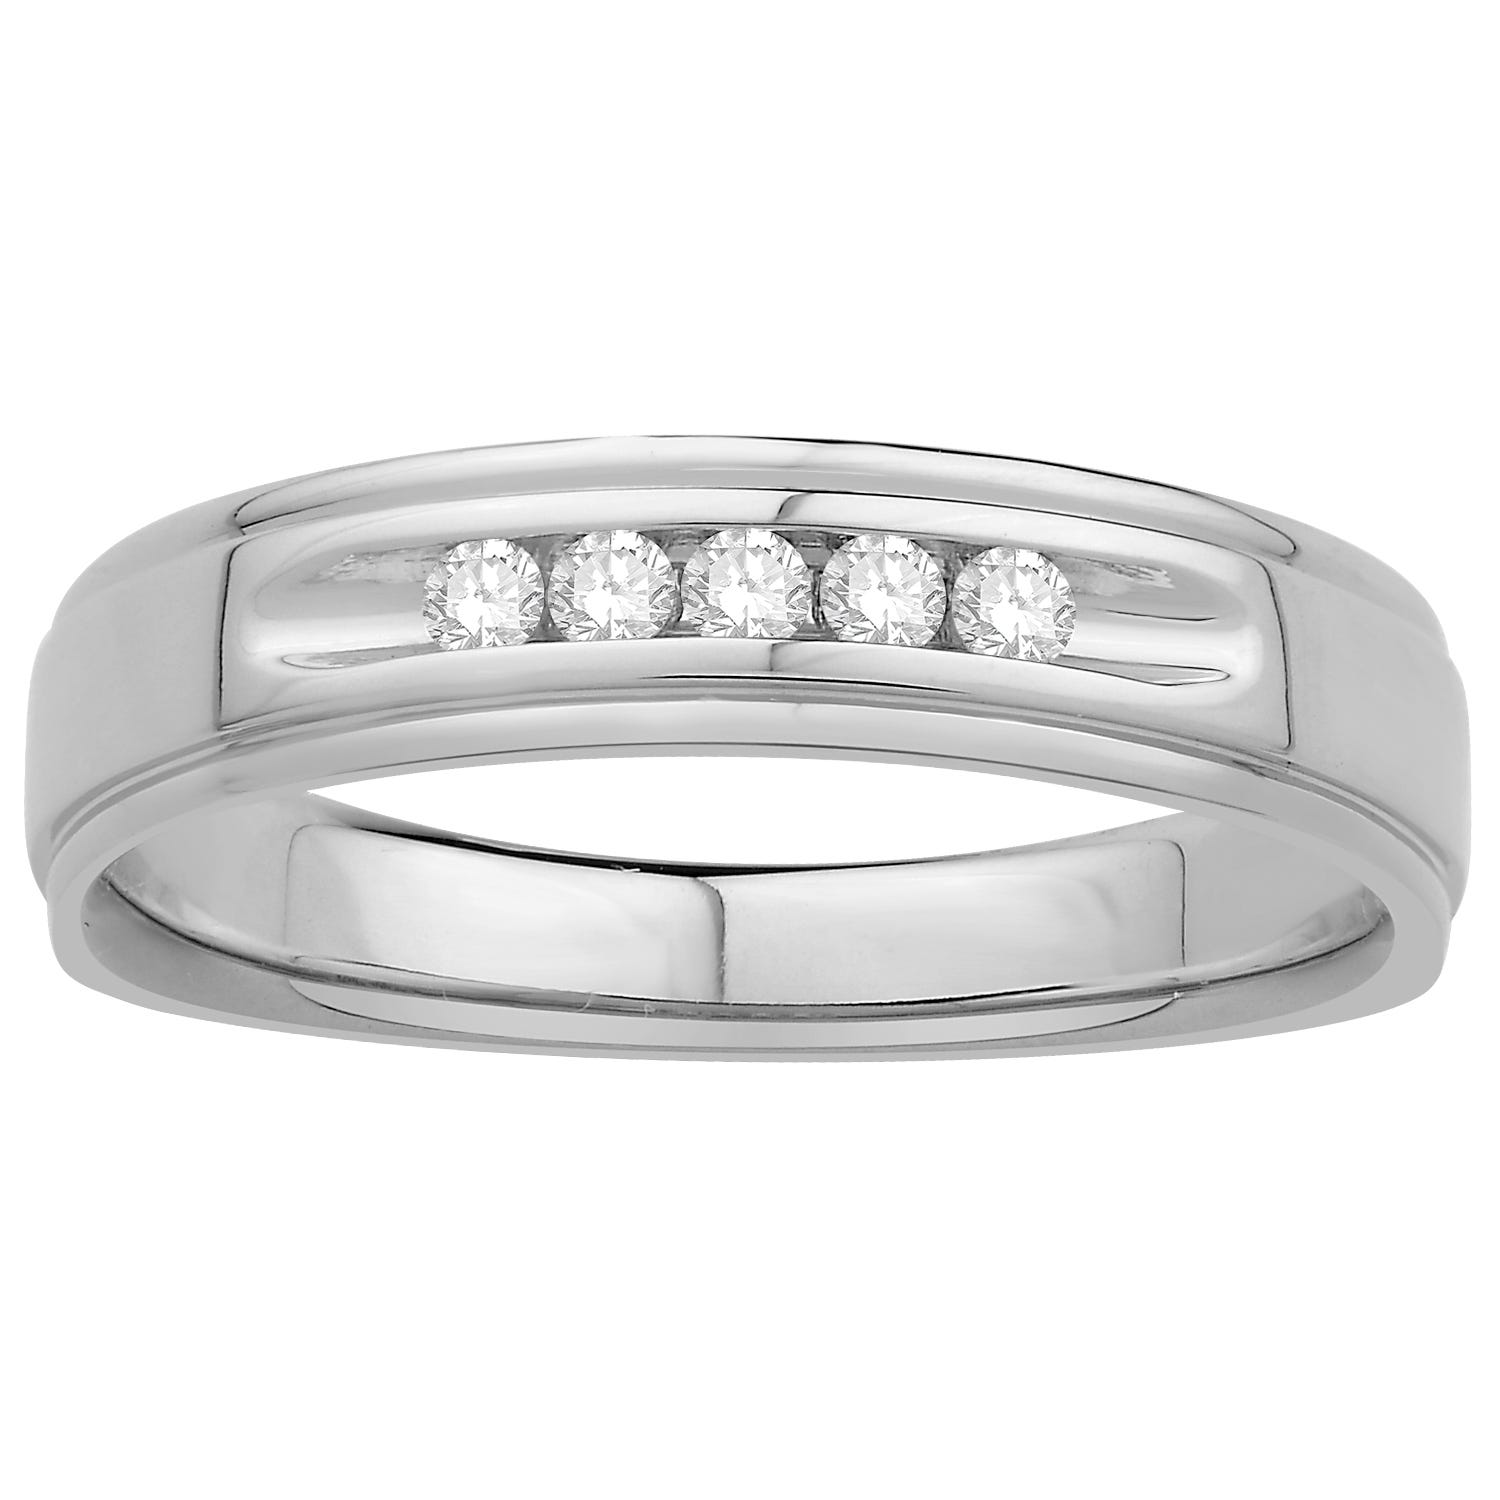 Round-Cut Diamond Gents Ring in 10kt White Gold